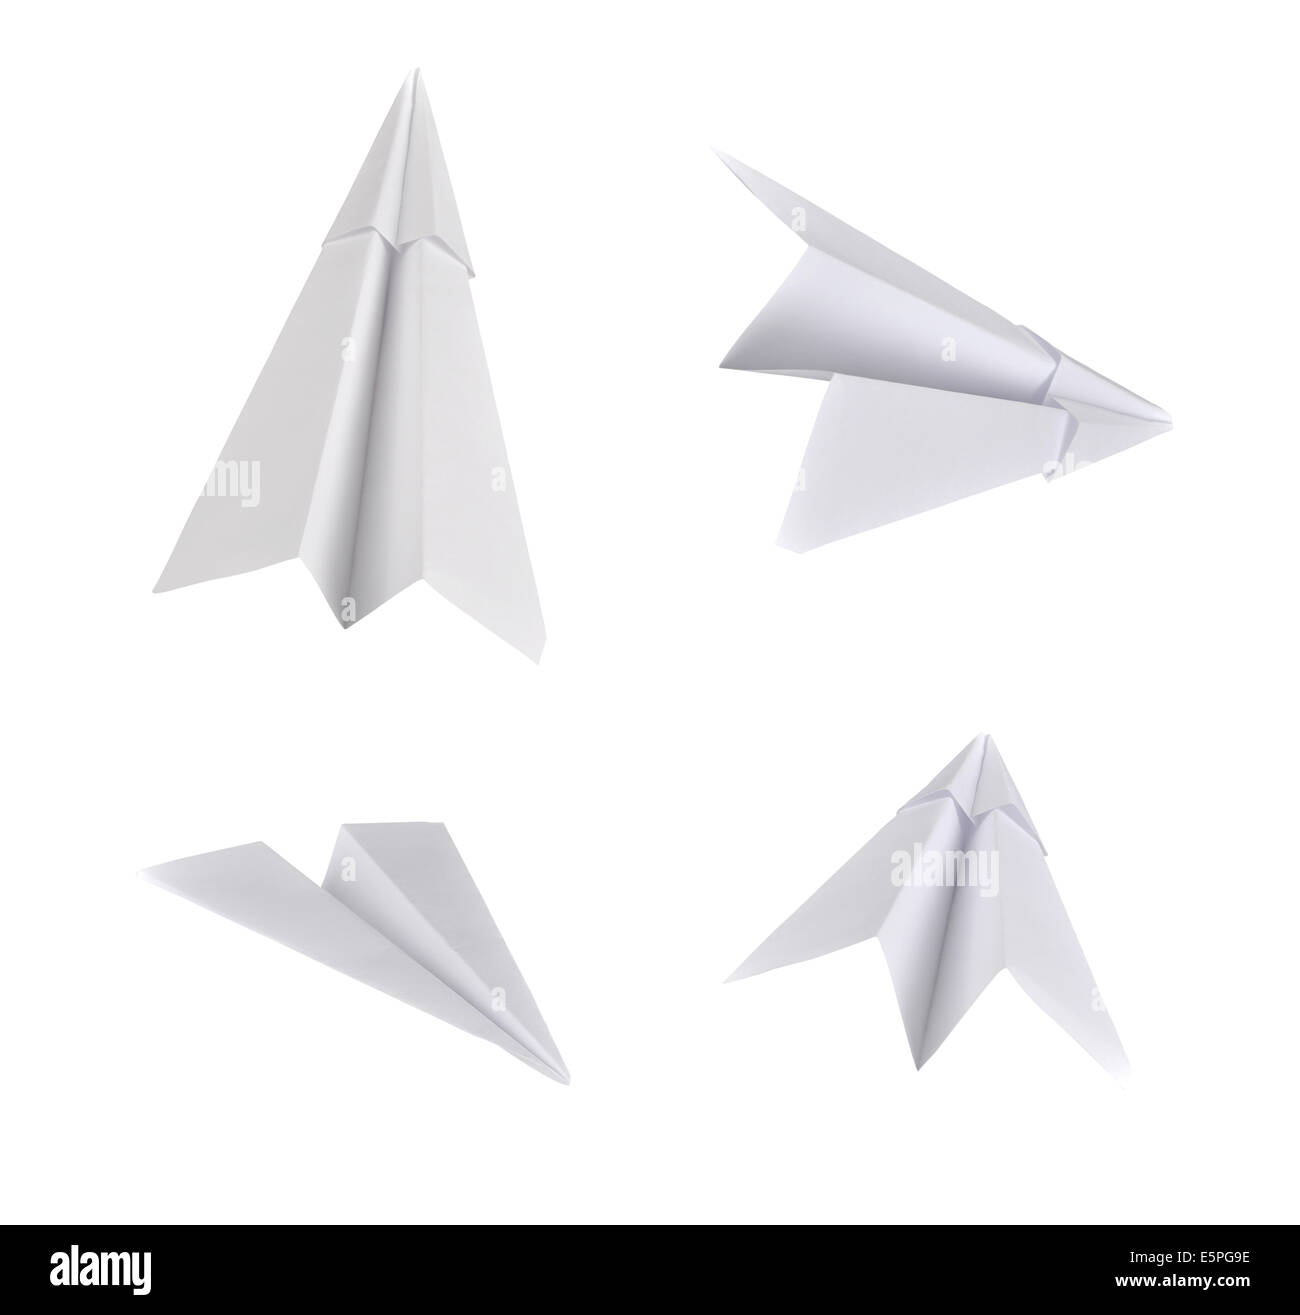 Set of real photos on paper planes. Isolated on white background. - Stock Image